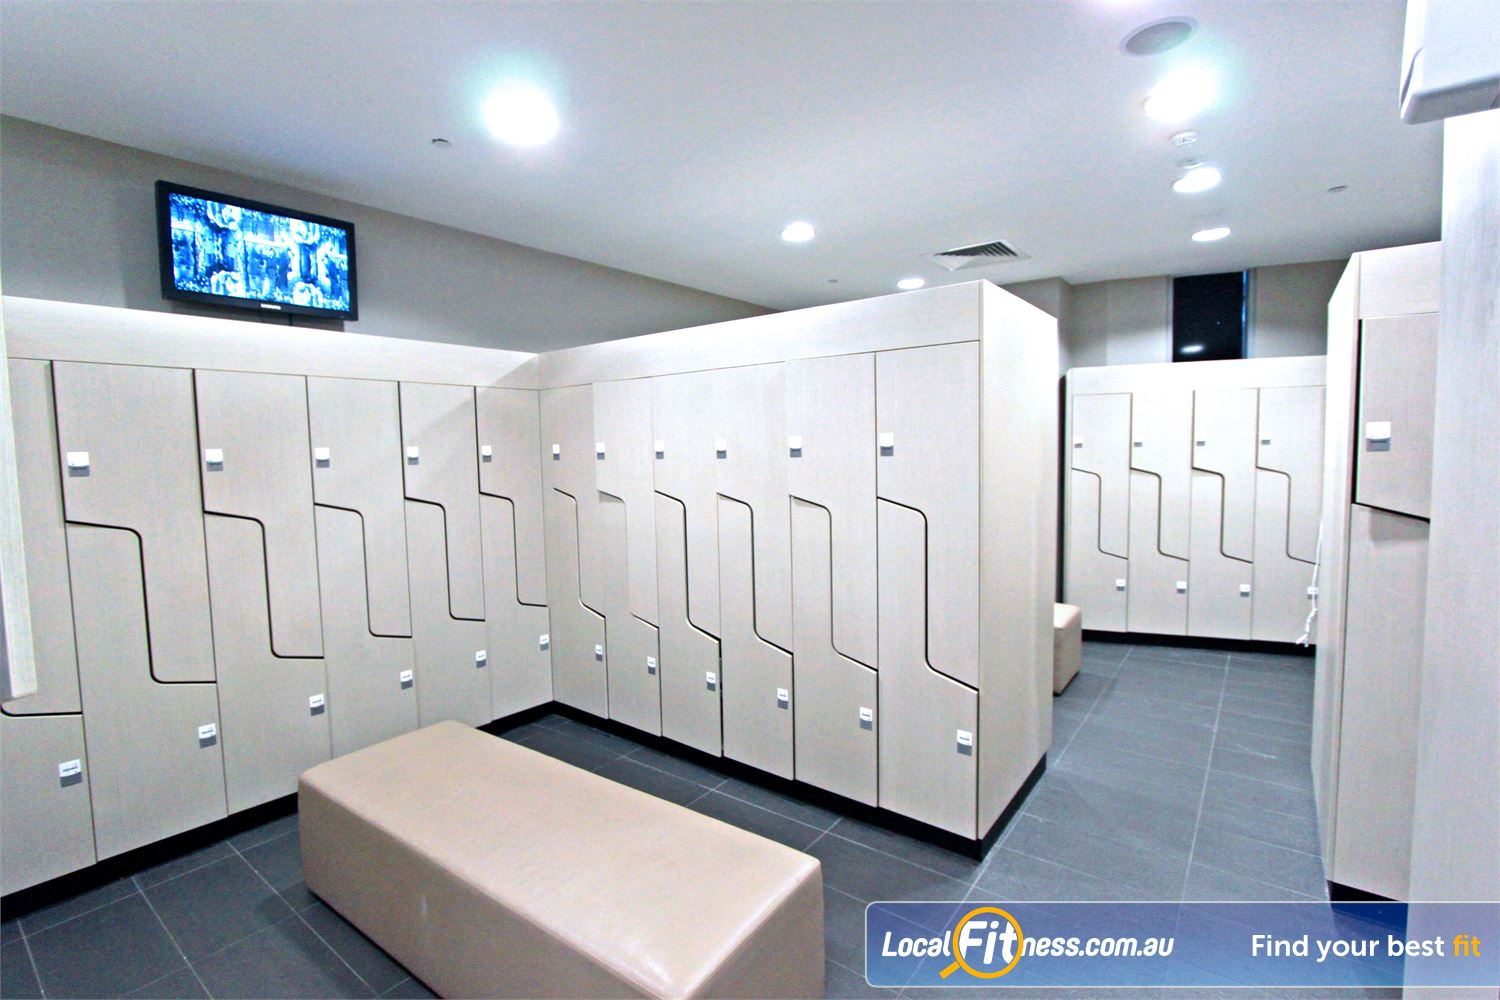 South Pacific Health Clubs Melbourne Spacious and secure lockers for all your belongings.